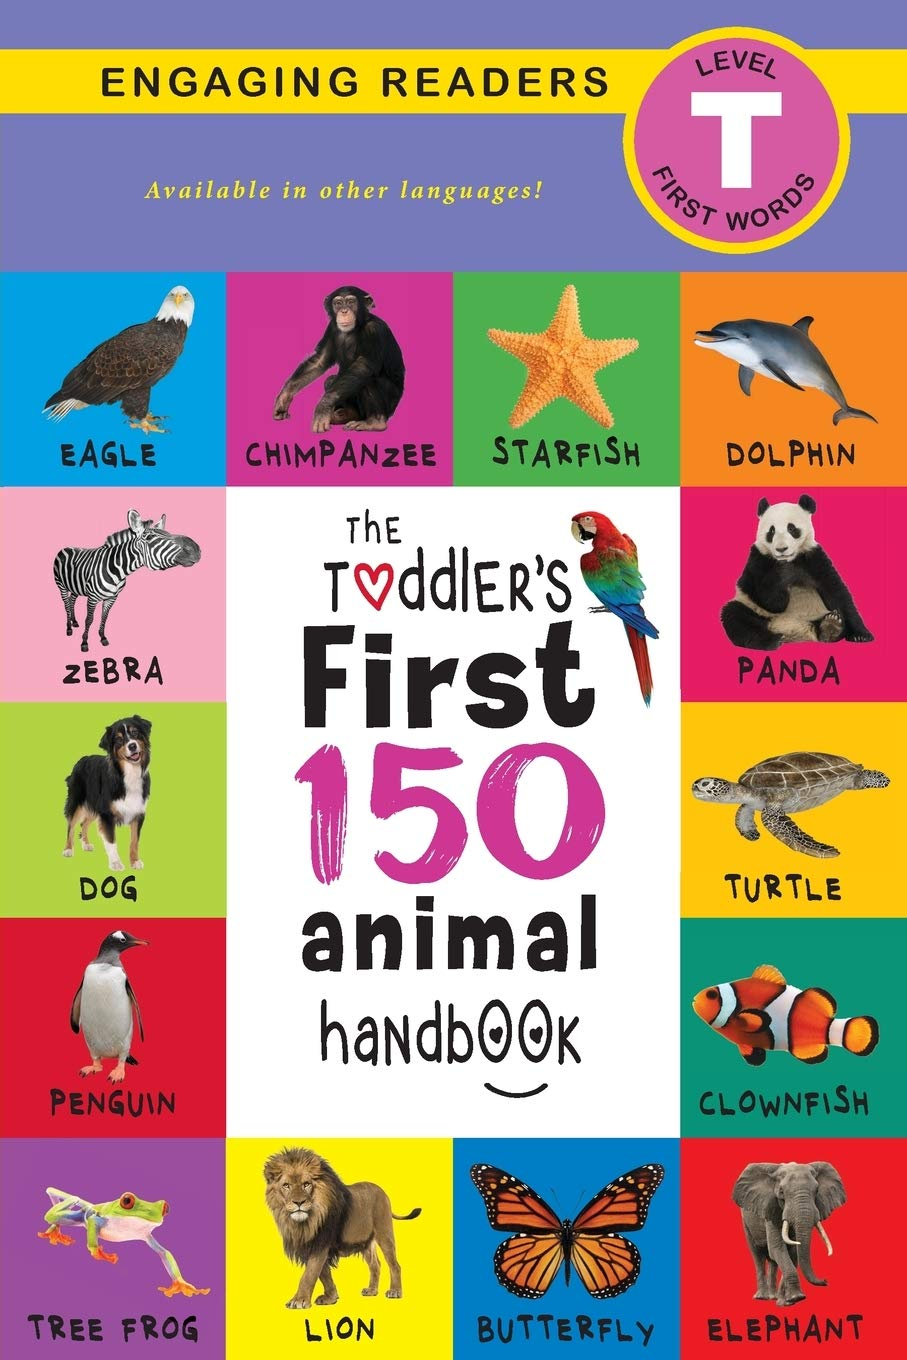 Amazon.com: The Toddler's First 150 Animal Handbook: Pets, Aquatic, Forest,  Birds, Bugs, Arctic, Tropical, Underground, Animals on Safari, and Farm  Animals (Engaging Readers, Level T) (9781774373552): Lee, Ashley, Roumanis,  Alexis: Books